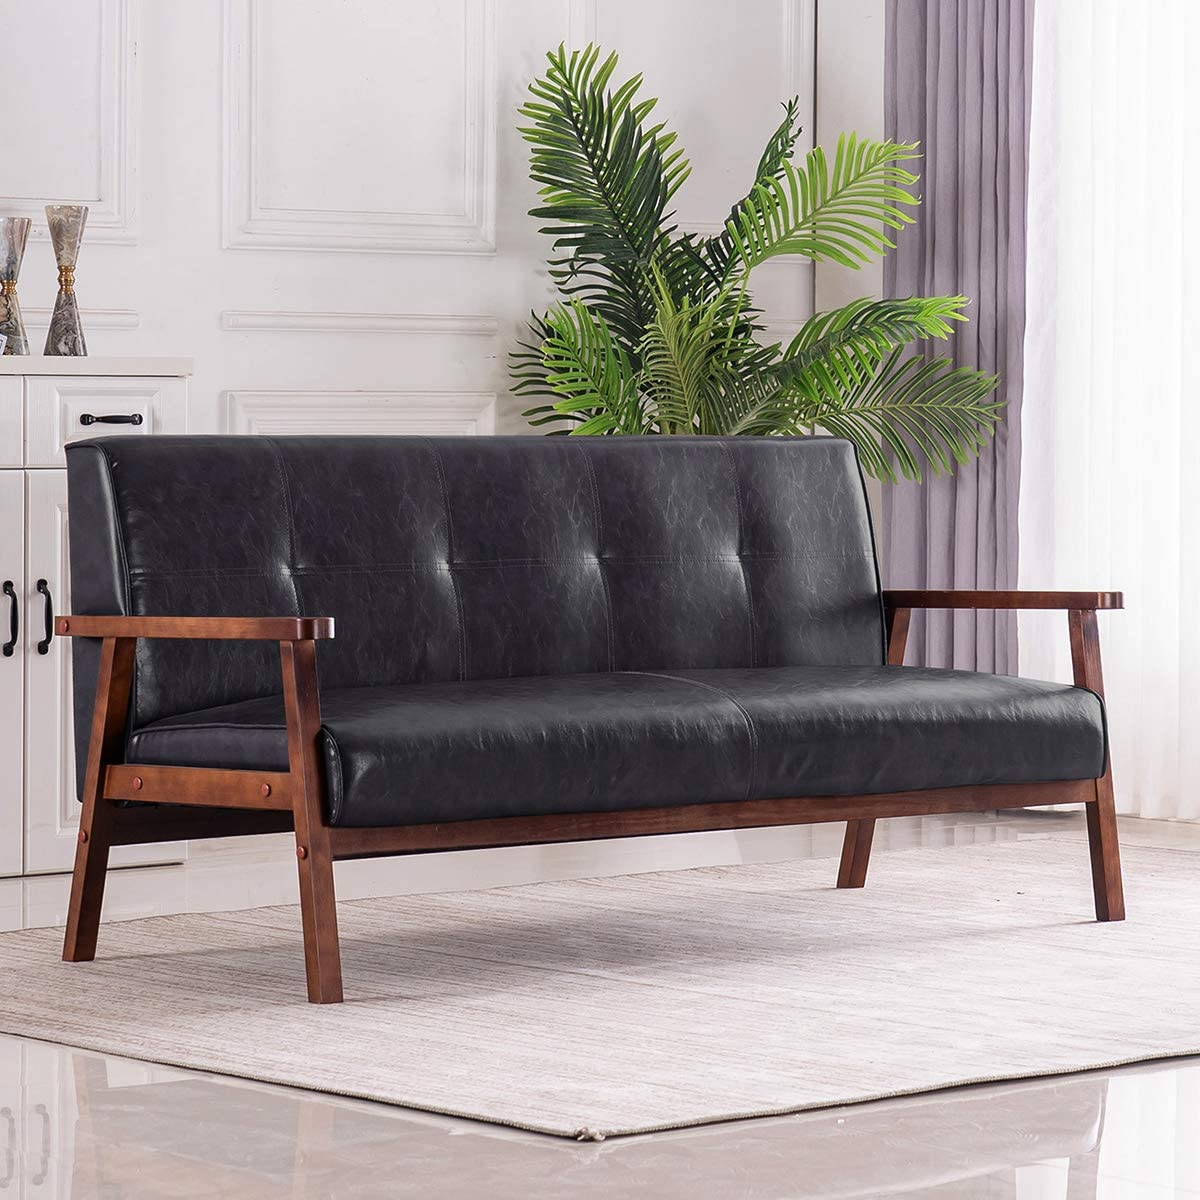 Mid-Century Retro Modern Faux Leather Upholstered Wooden 3-Seater Sofa (Black)